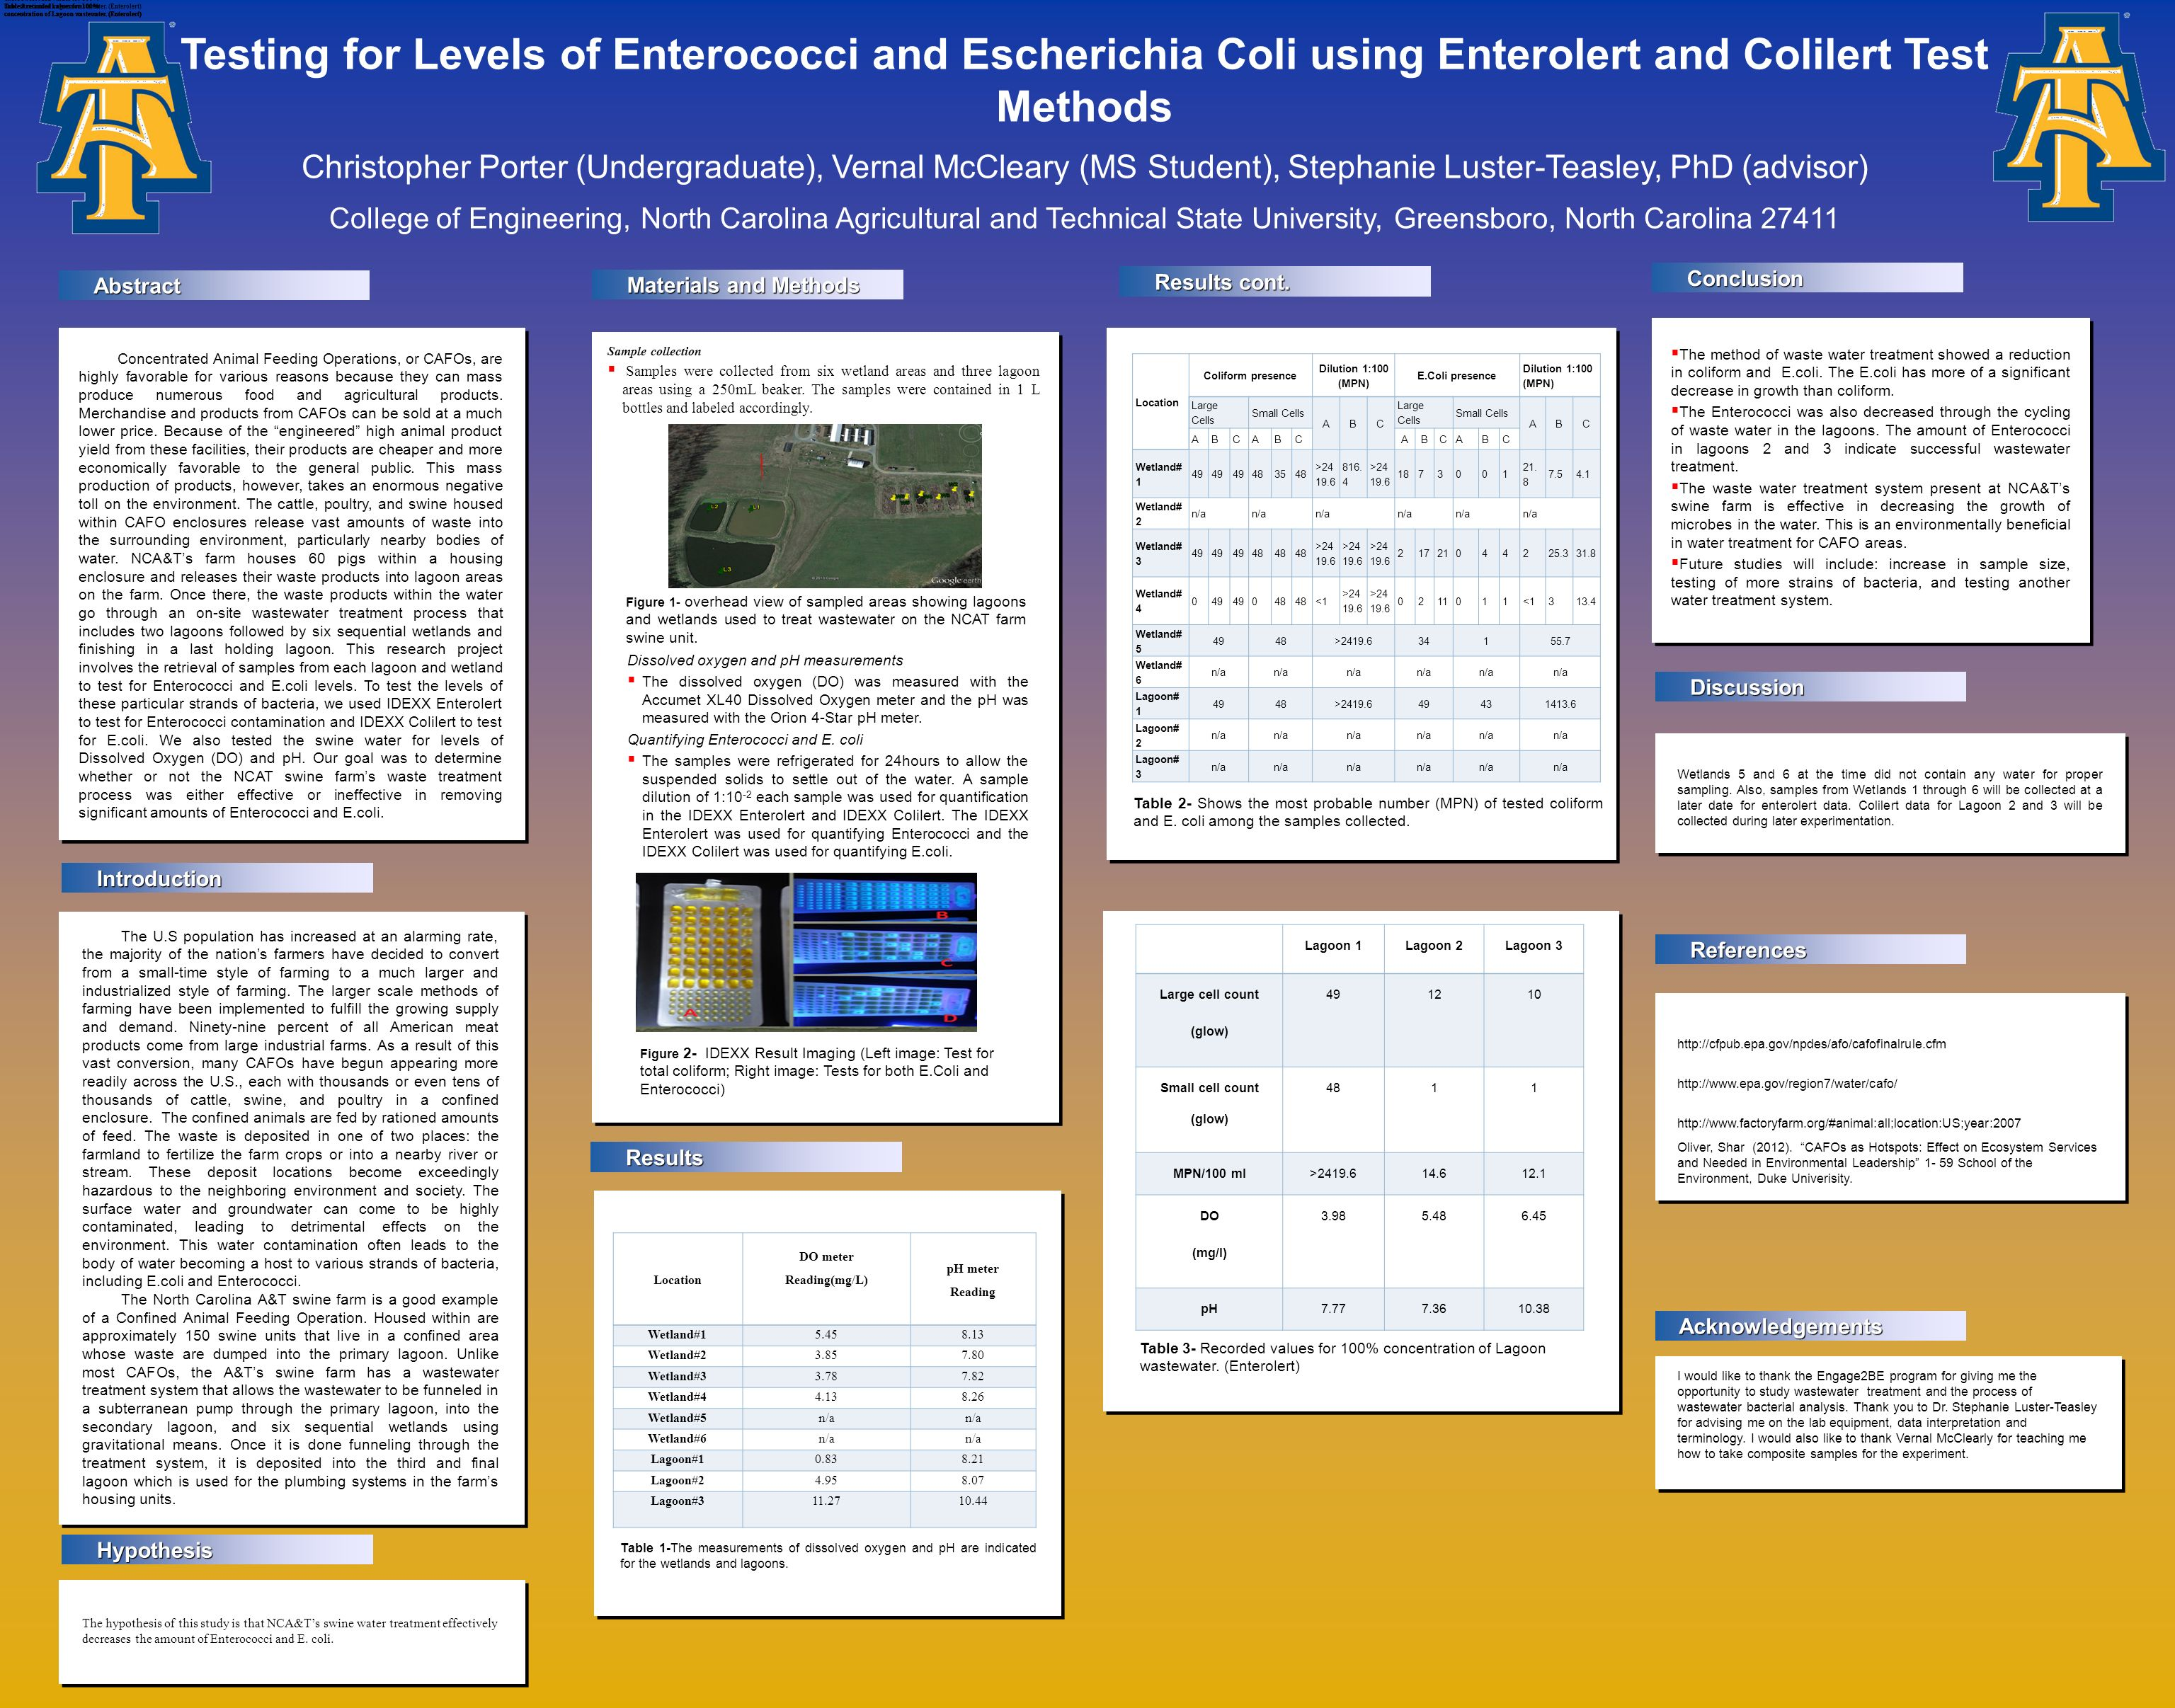 Abstract The method of waste water treatment showed a reduction in coliform and E.coli.